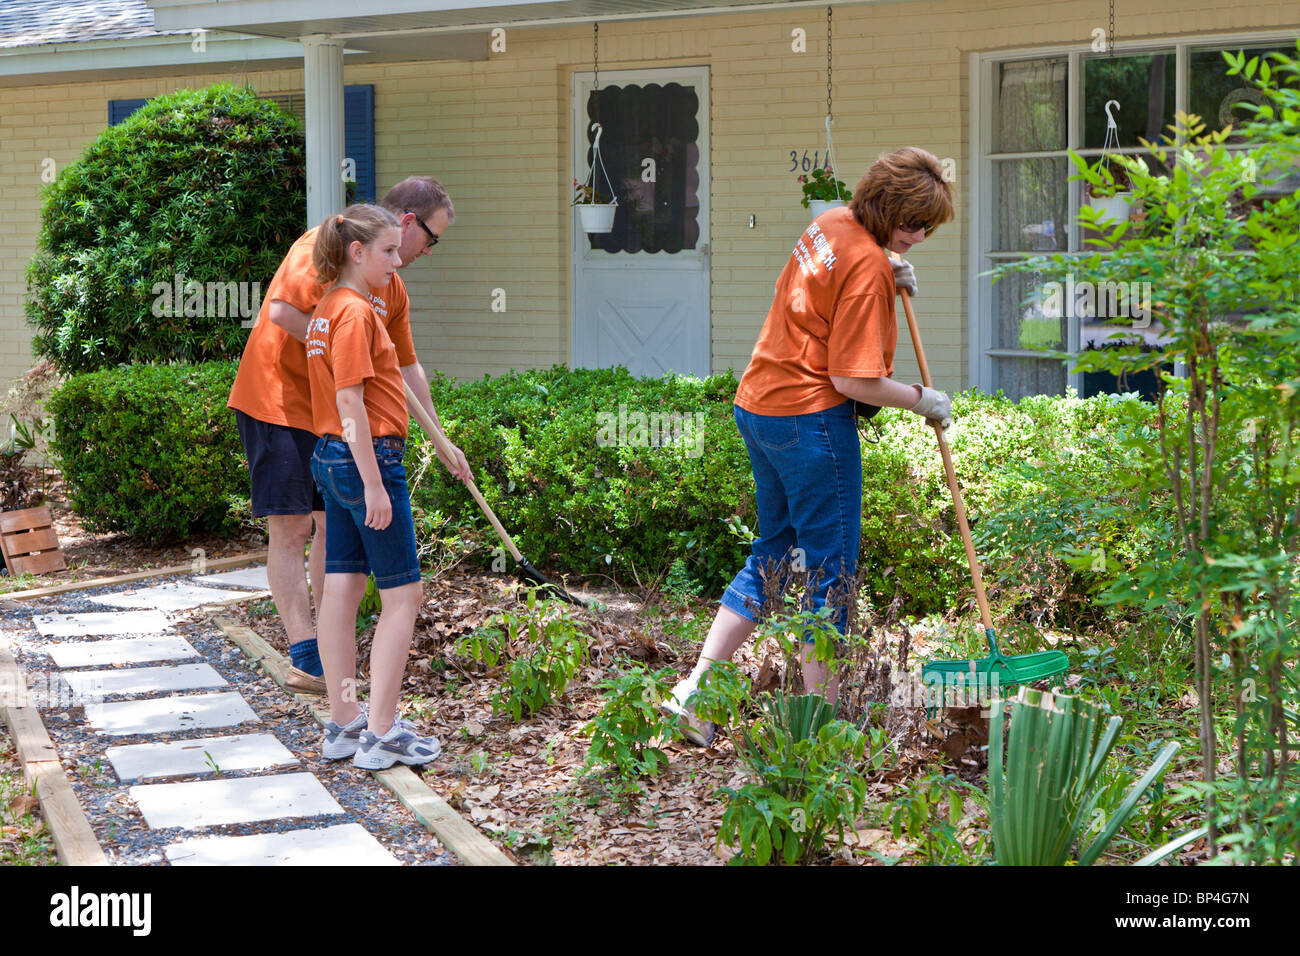 Members of First Baptist Church provide community service during Be The Church outreach project in Ocala, Florida - Stock Image